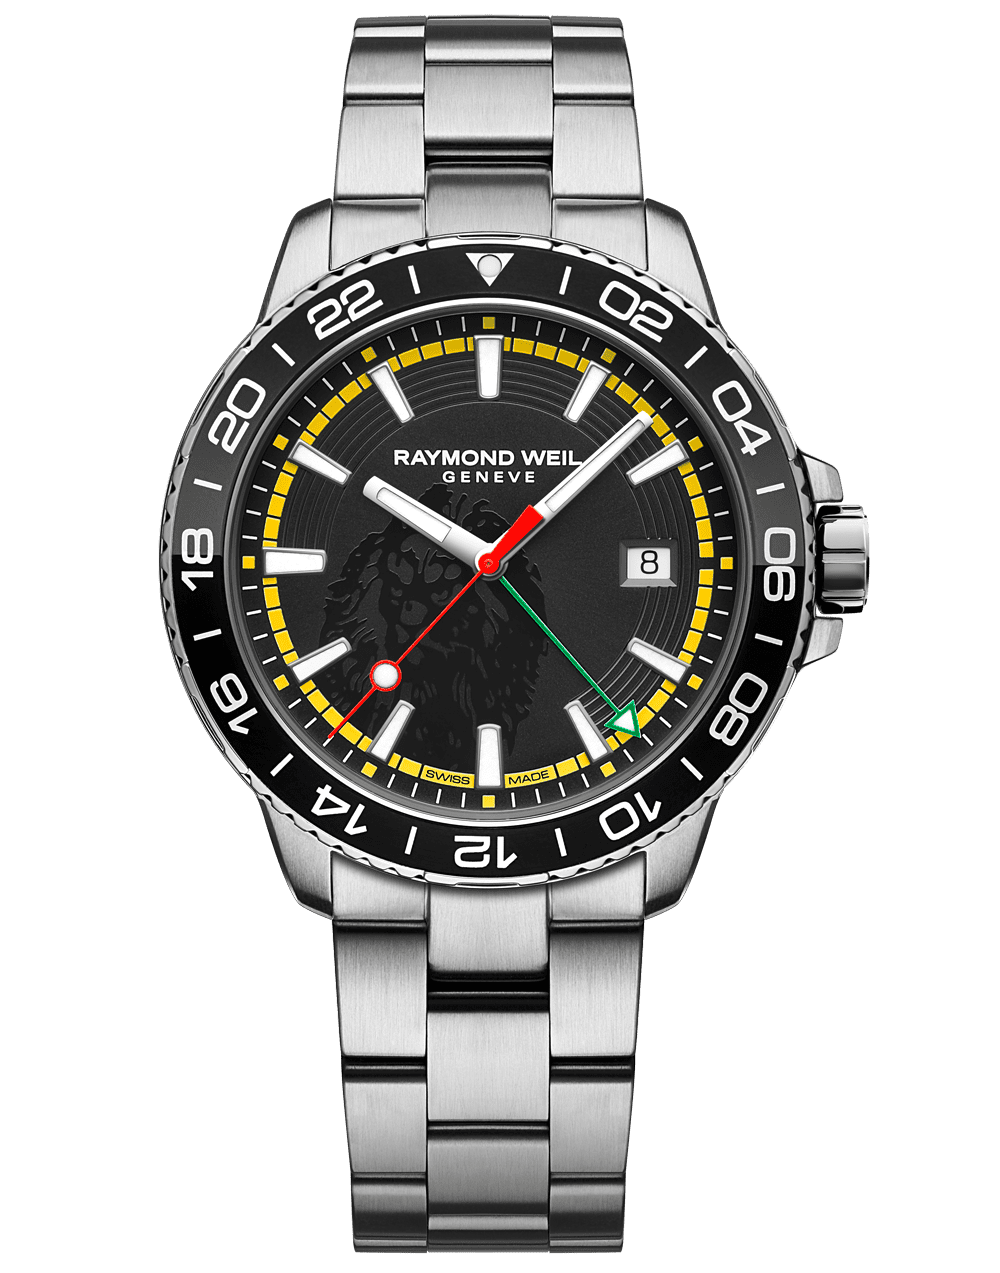 RAYMOND WEIL Men's Tango GMT Bob Marley Limited Edition Luxury Swiss Watch